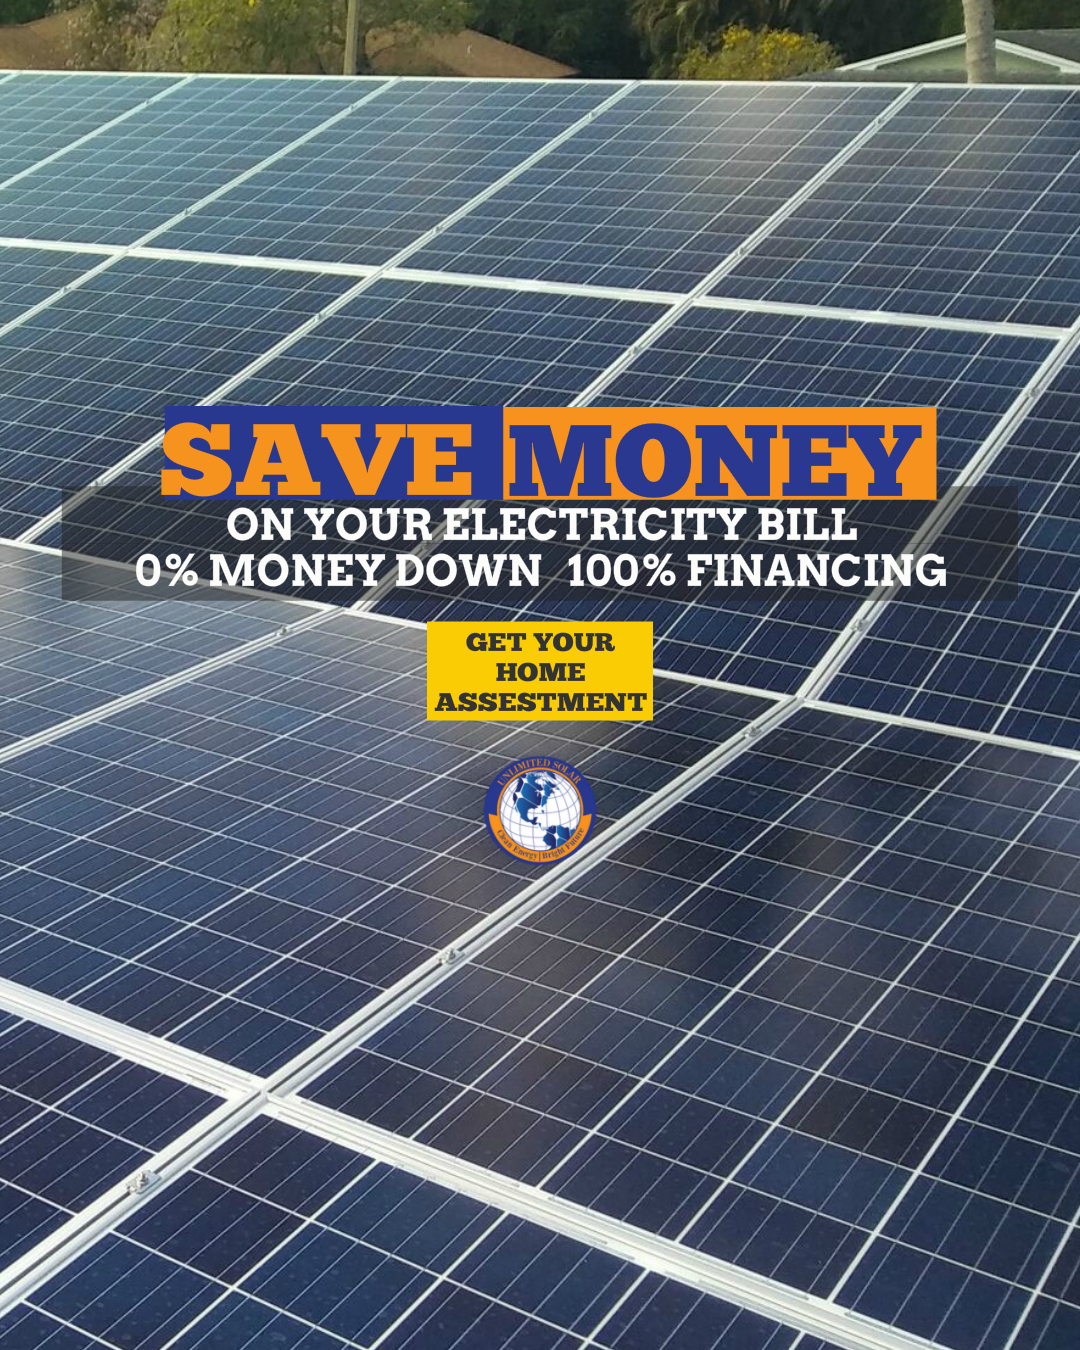 Just Contact Us And Get An Electricity Commercial Or Residential Assessment And Start Saving Money Immediately 1 877 S Pool Solar Panels Electricity Bill Solar